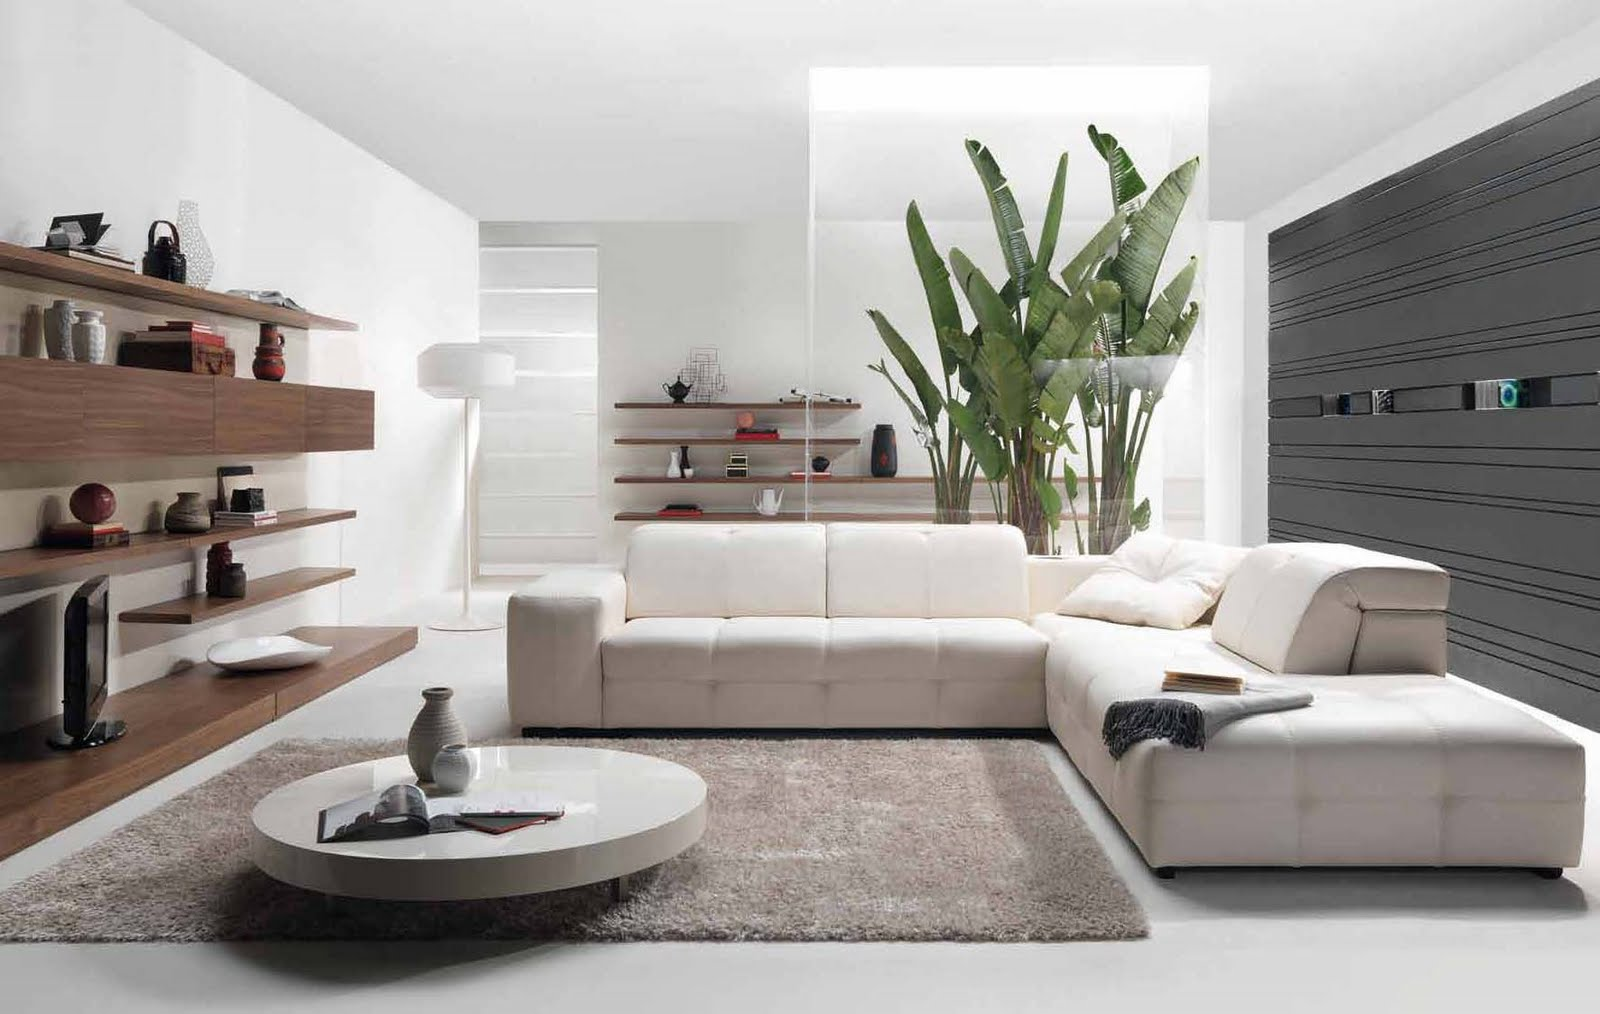 Future house design modern living room interior design styles 2010 by natuzzi - Modern living room design images ...